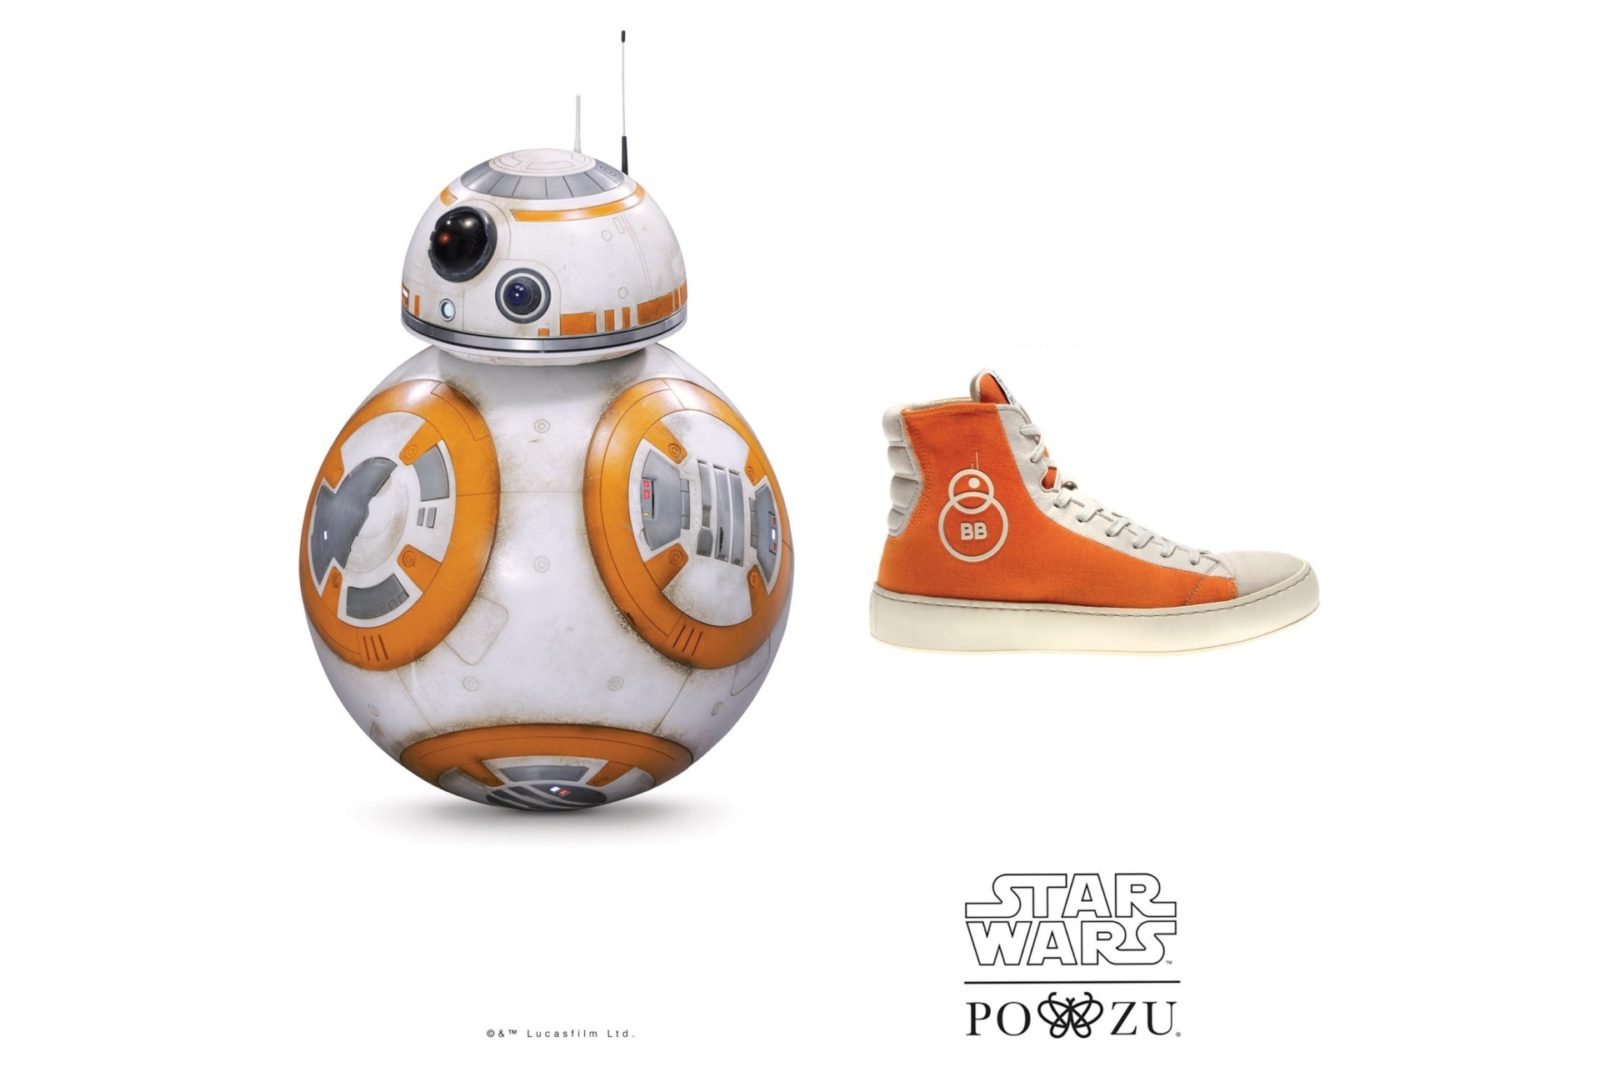 Po-Zu x Star Wars BB-8 sneaker preview!